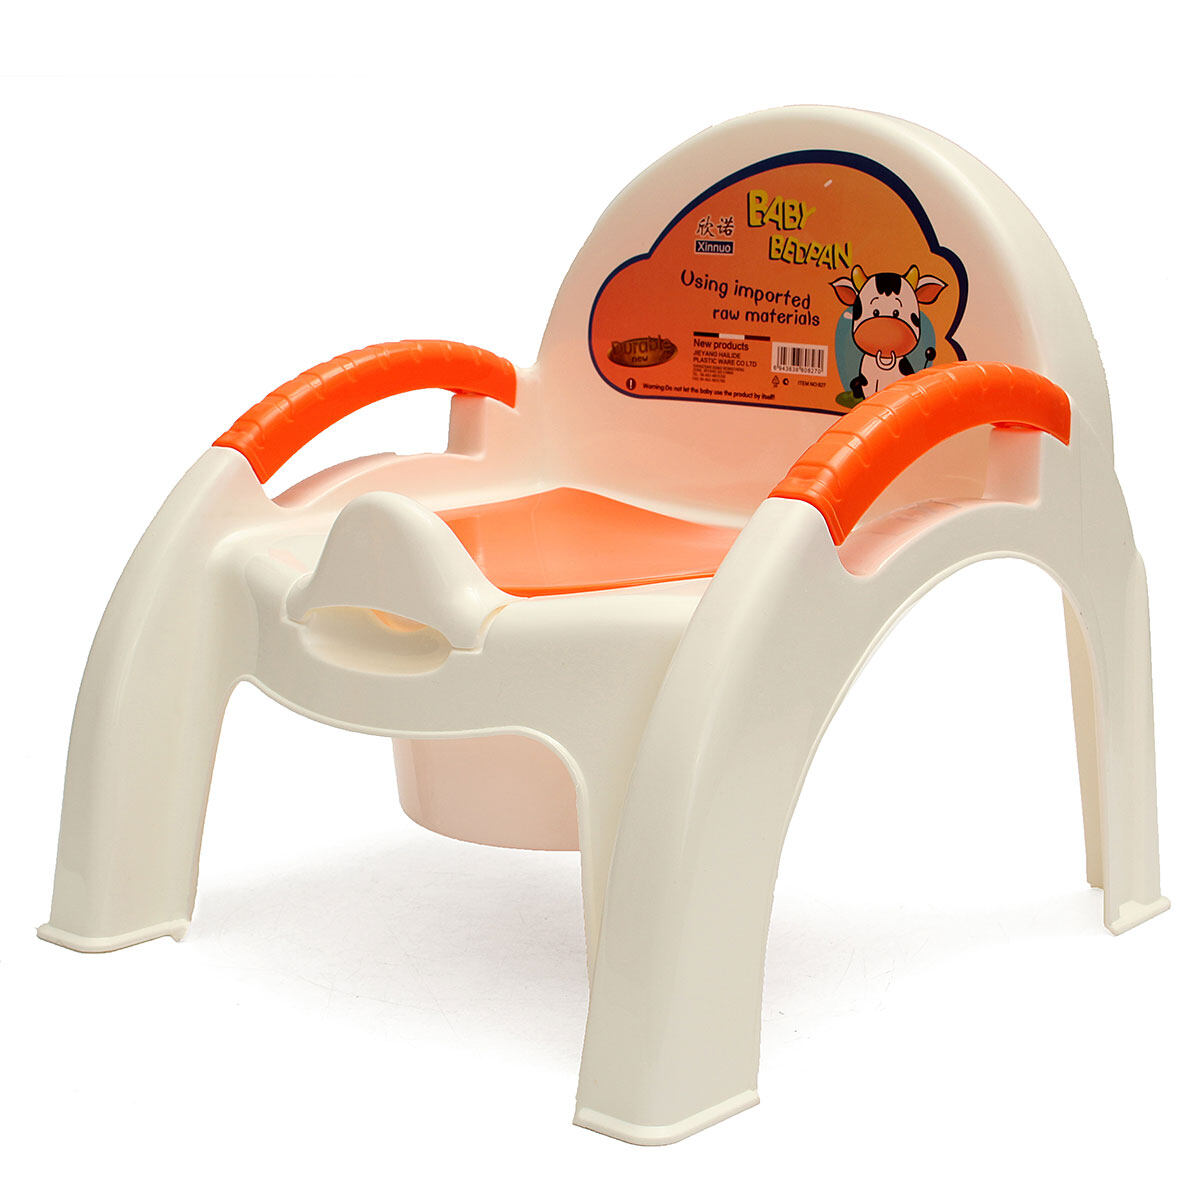 BABY Child Toliet Seat Chair Potty Training Toddler Removable Kids Easy Clean Orange - intl